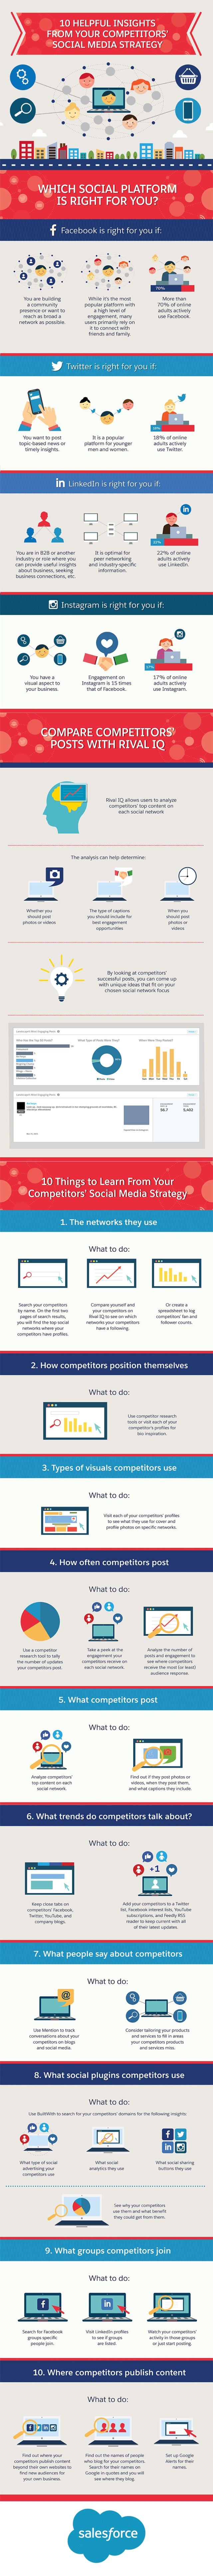 10 Ways to Steal Ideas From Your Competitors' Social Media Strategy